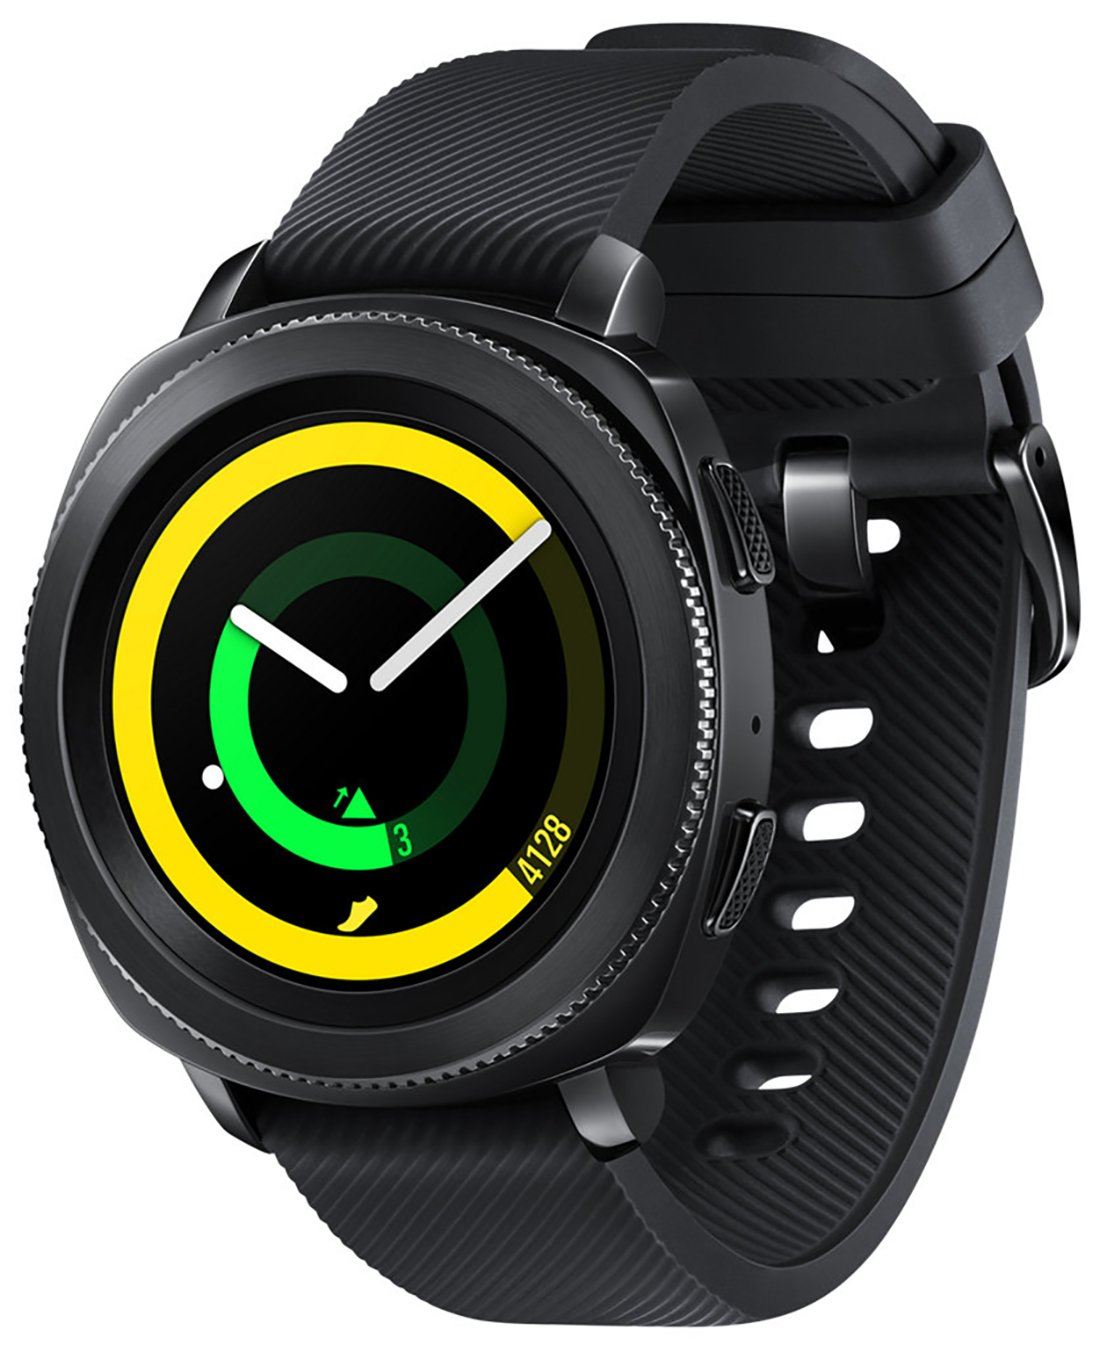 Samsung Gear Sport (SM-R600) Black, International Version, No Warranty